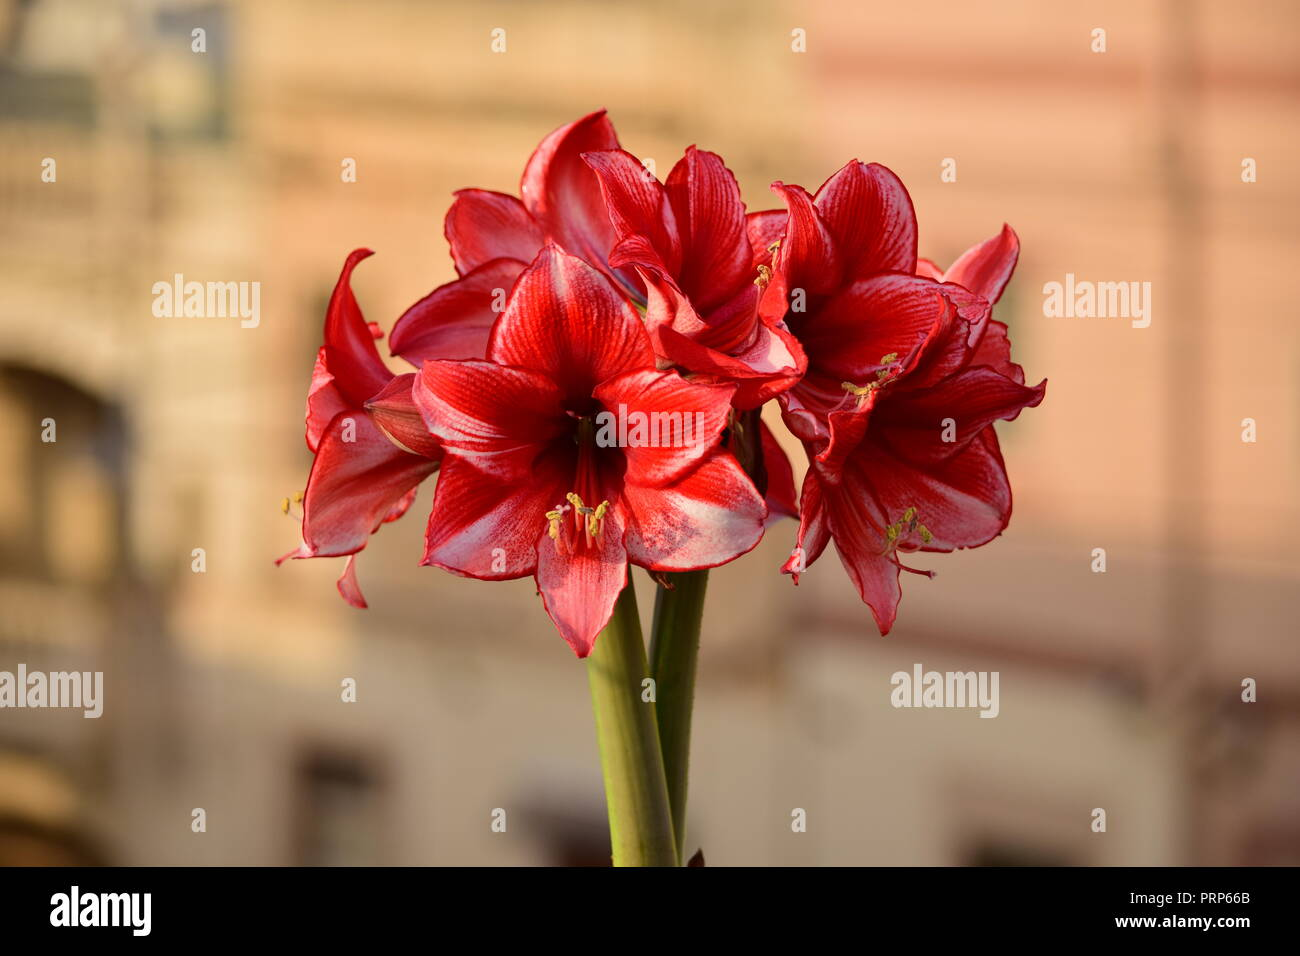 A bunch of Charisma Amaryllis flowers, from two stems coming out of the same bulb. White red petals with pollen stamens. Gardening, roof garden, Malta - Stock Image